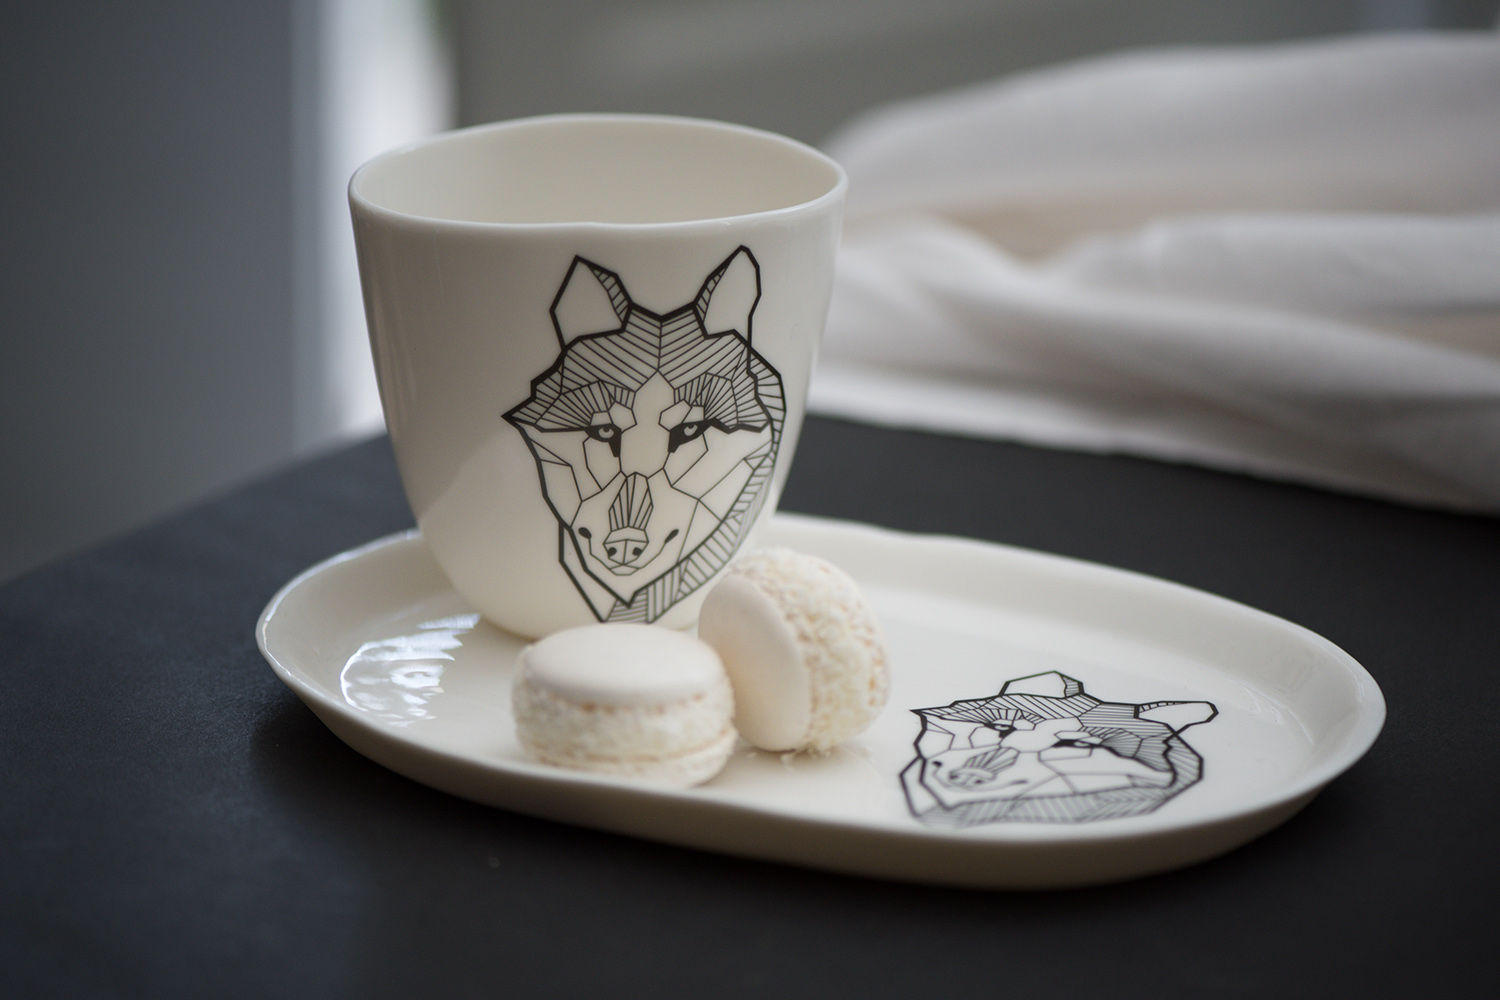 Berlin Hotel Luxury Porcelain Wolf Tattoo black white style Coffee Mug handmade macarons Antikapratika .jpg